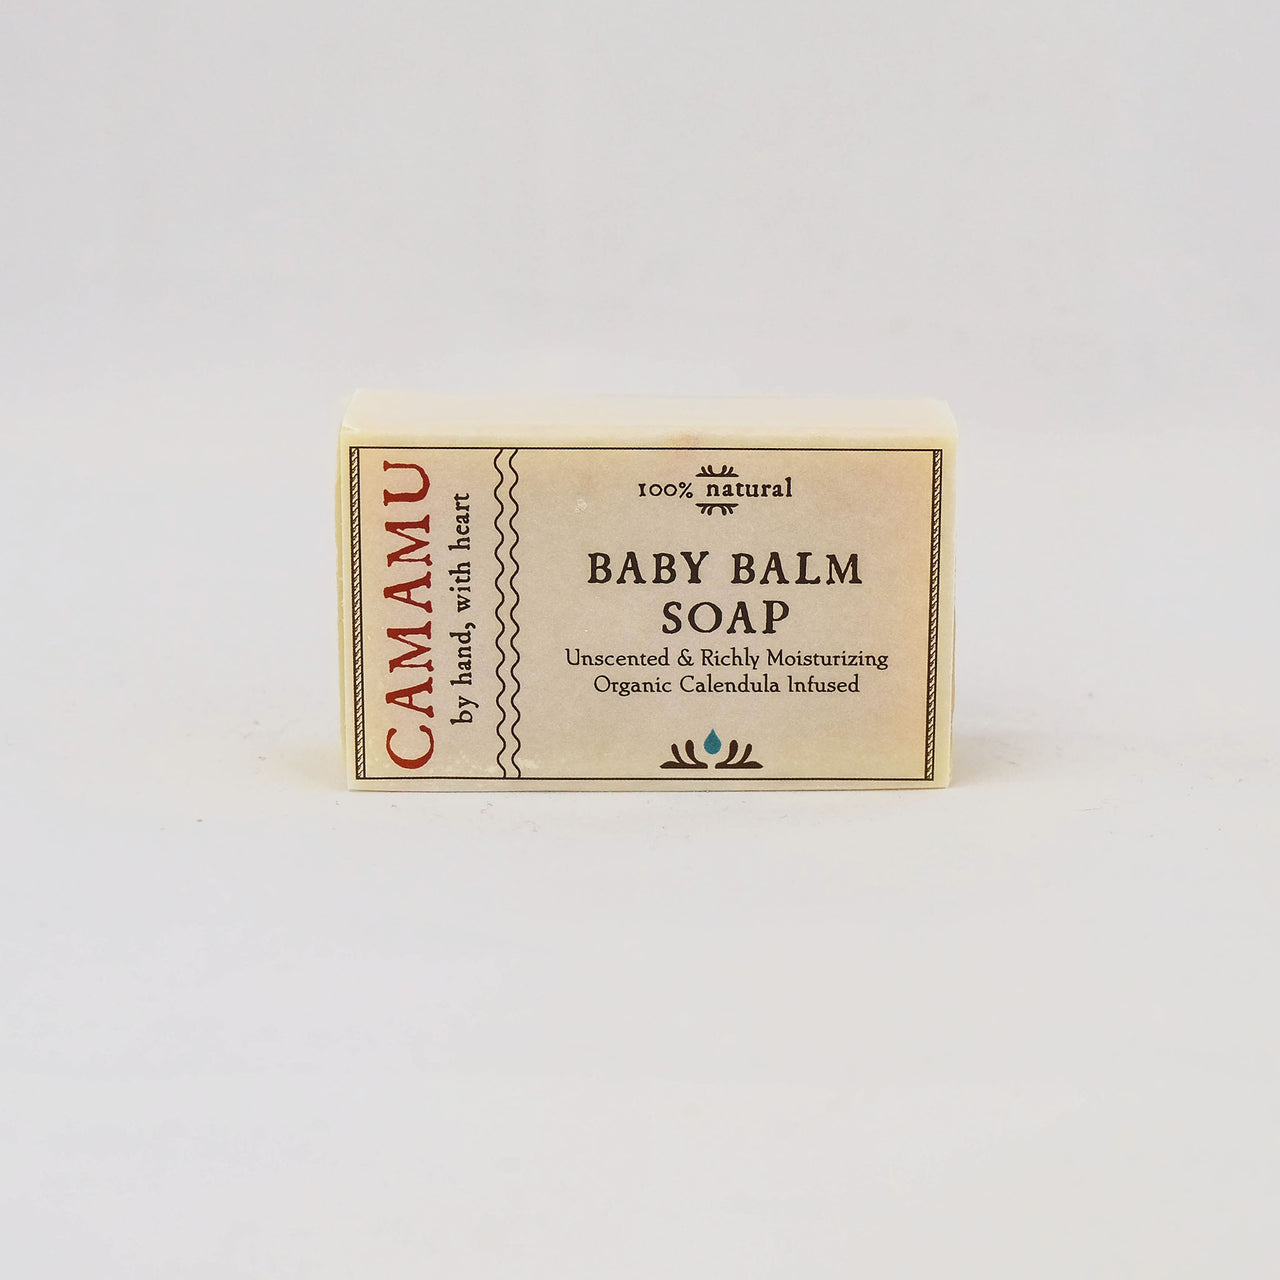 Baby Balm Soap